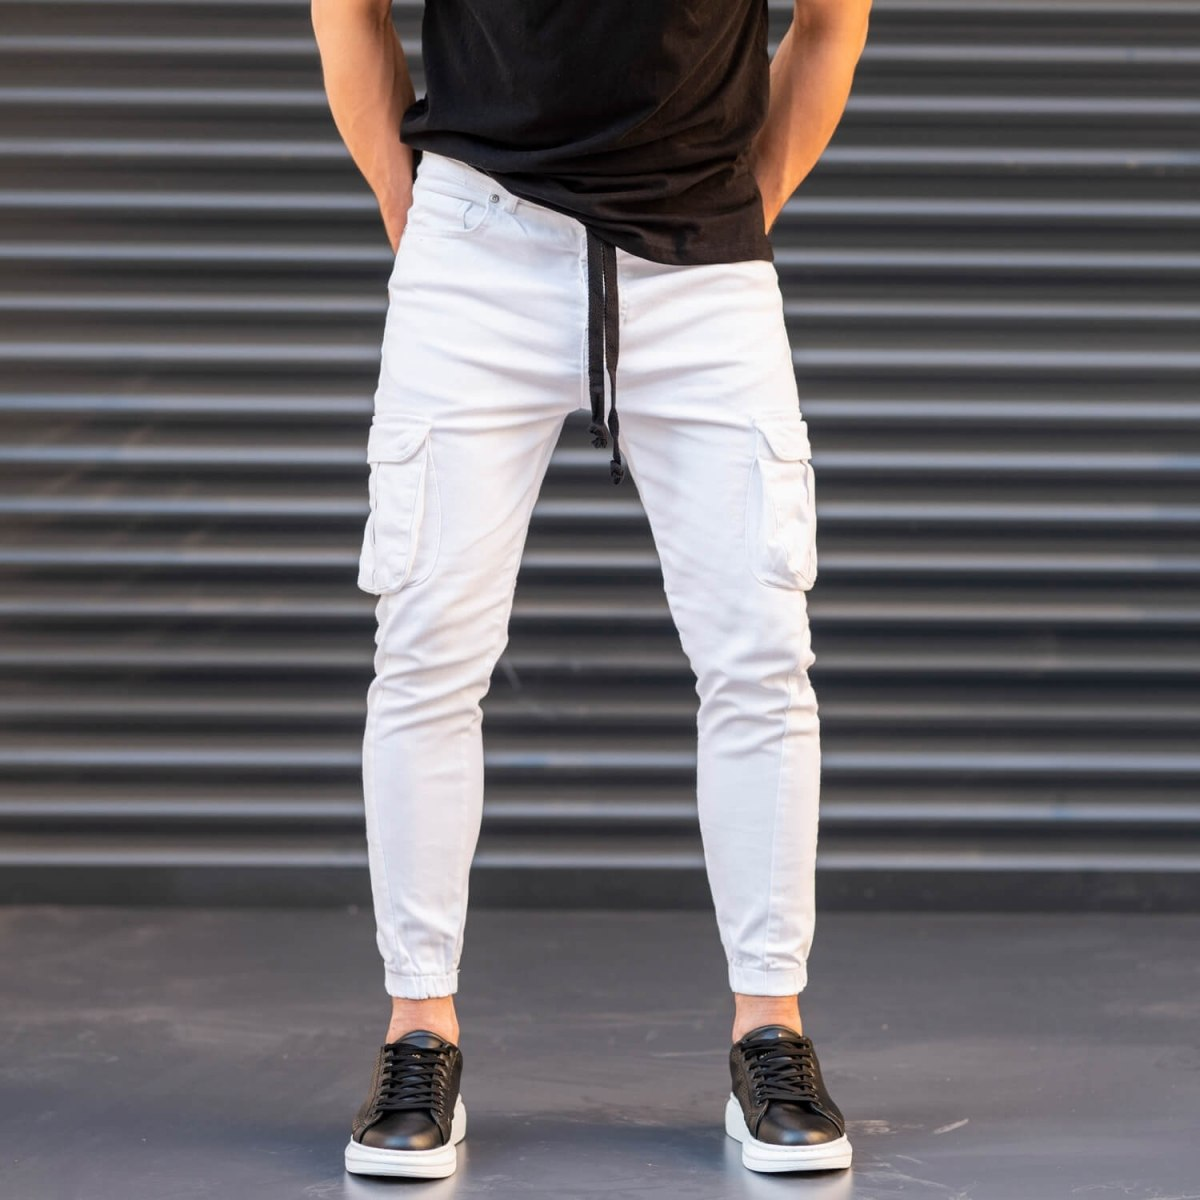 Men's Jeans with Pockets Style in White Mv Premium Brand - 2